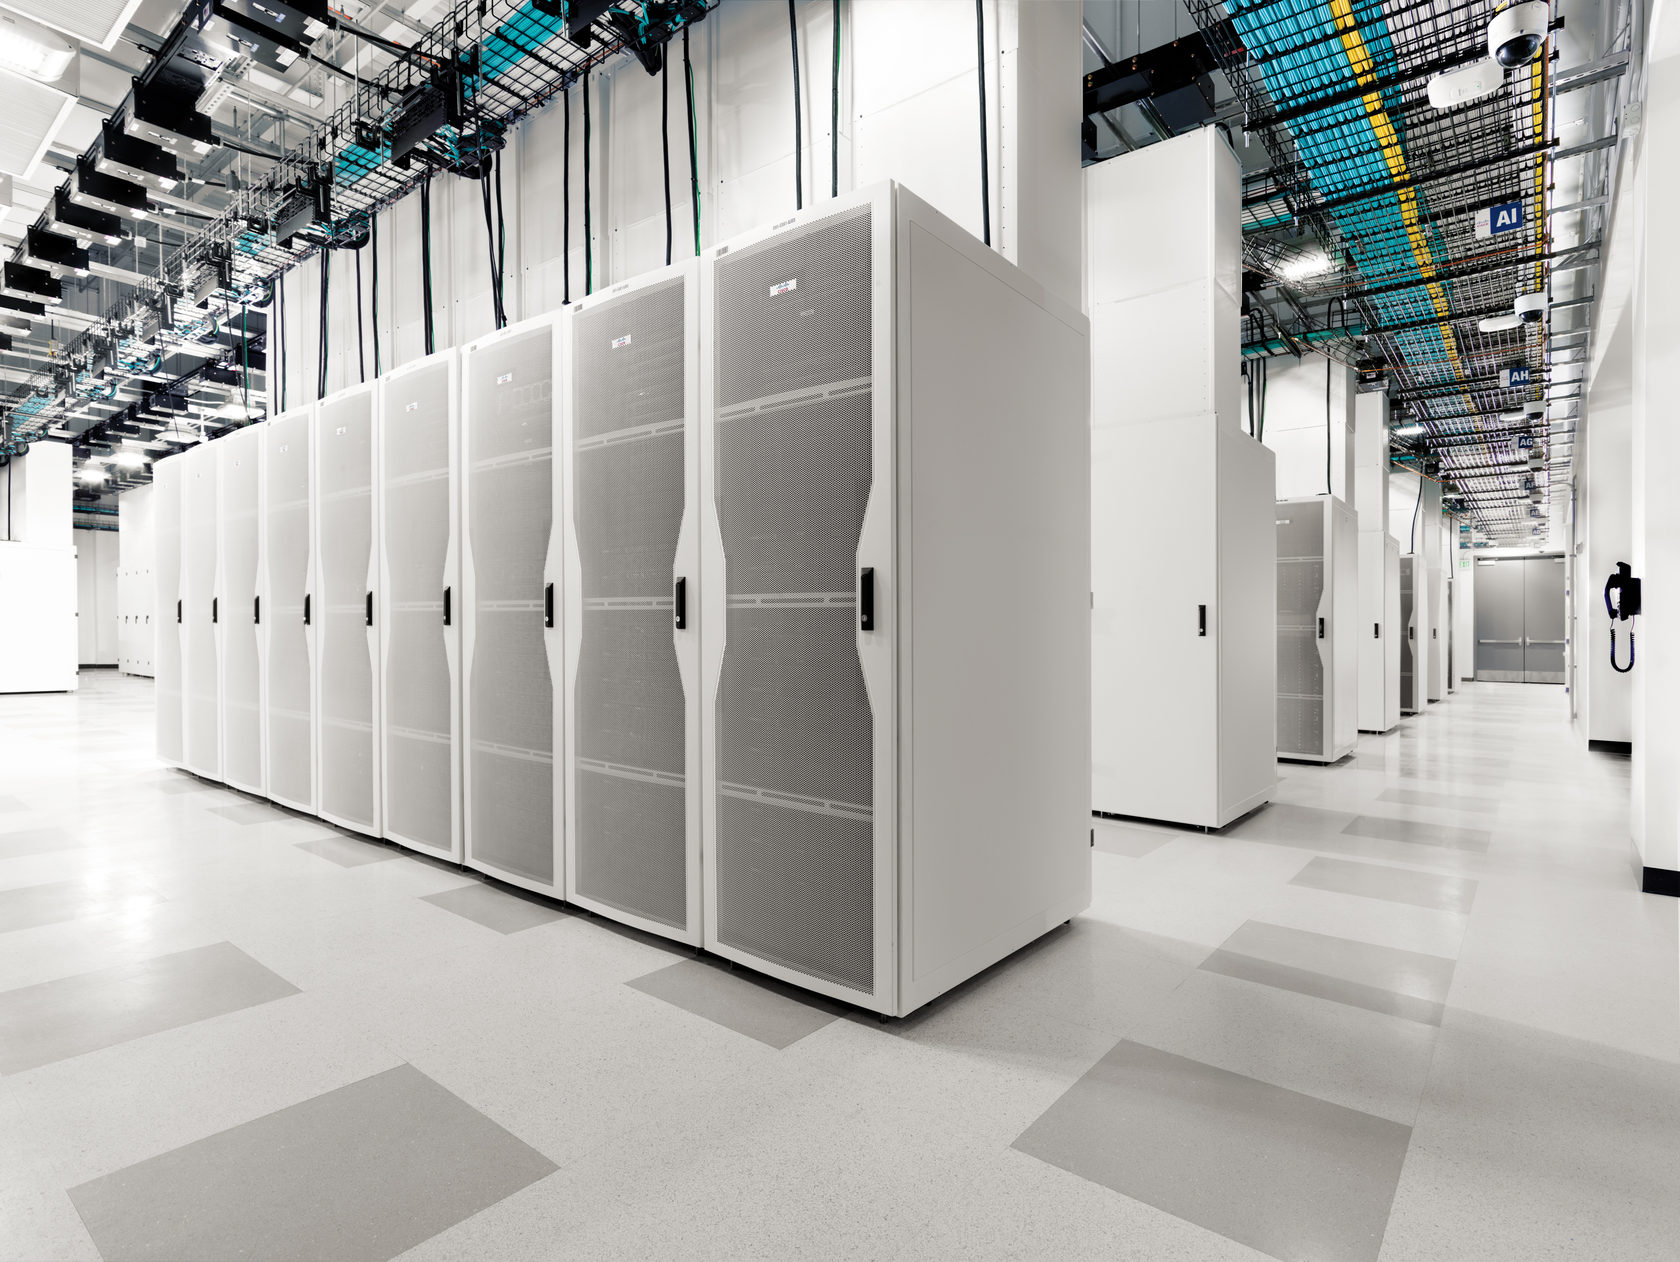 ciscos compelling vision for the data center includes ucs - HD1680×1262